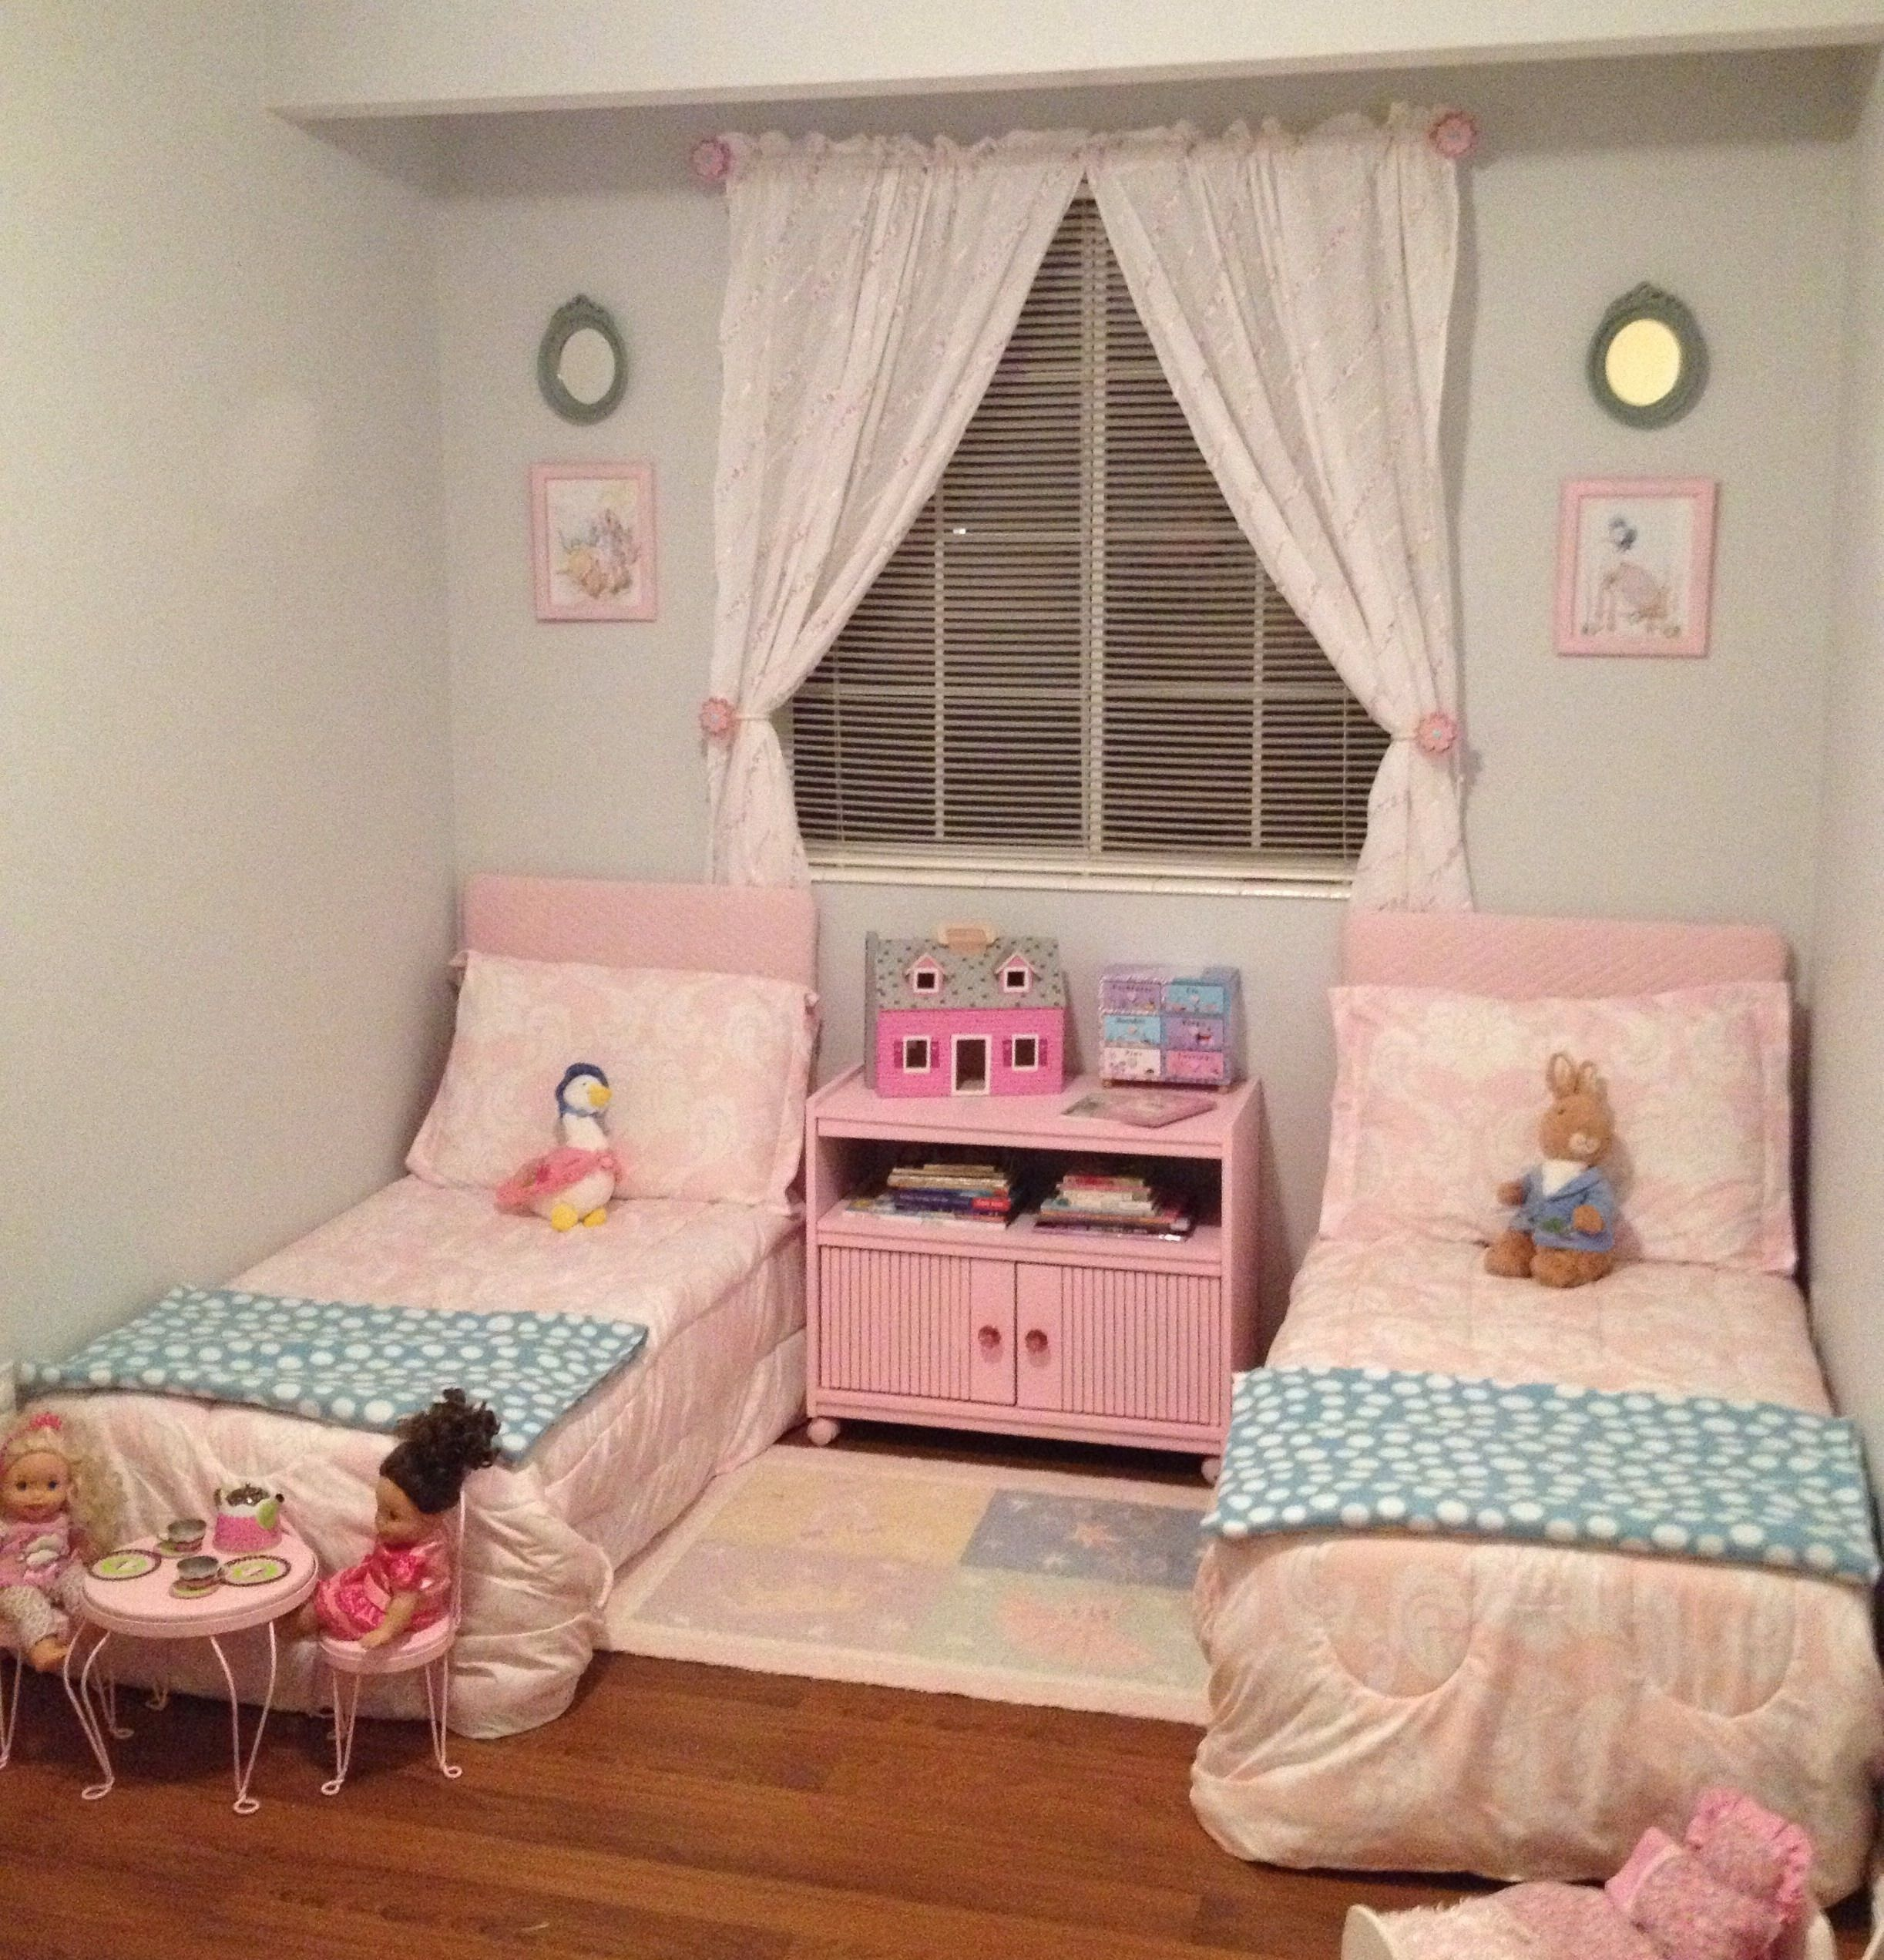 41 Classy Bedrooms Twin Beds Ideas For Small Rooms bedroom ...